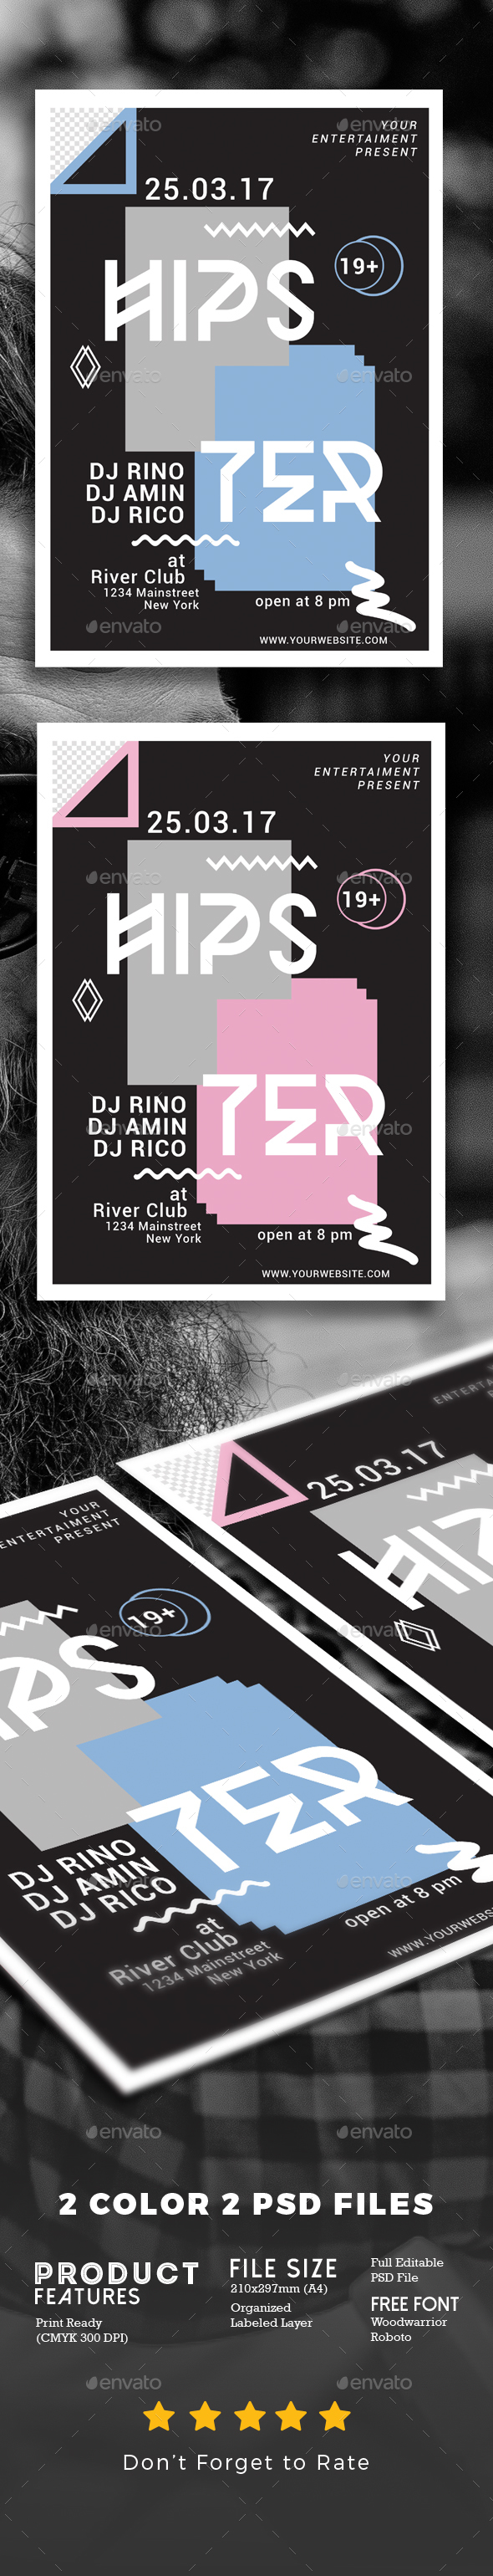 Minimal Hipster Party Flyer - Events Flyers